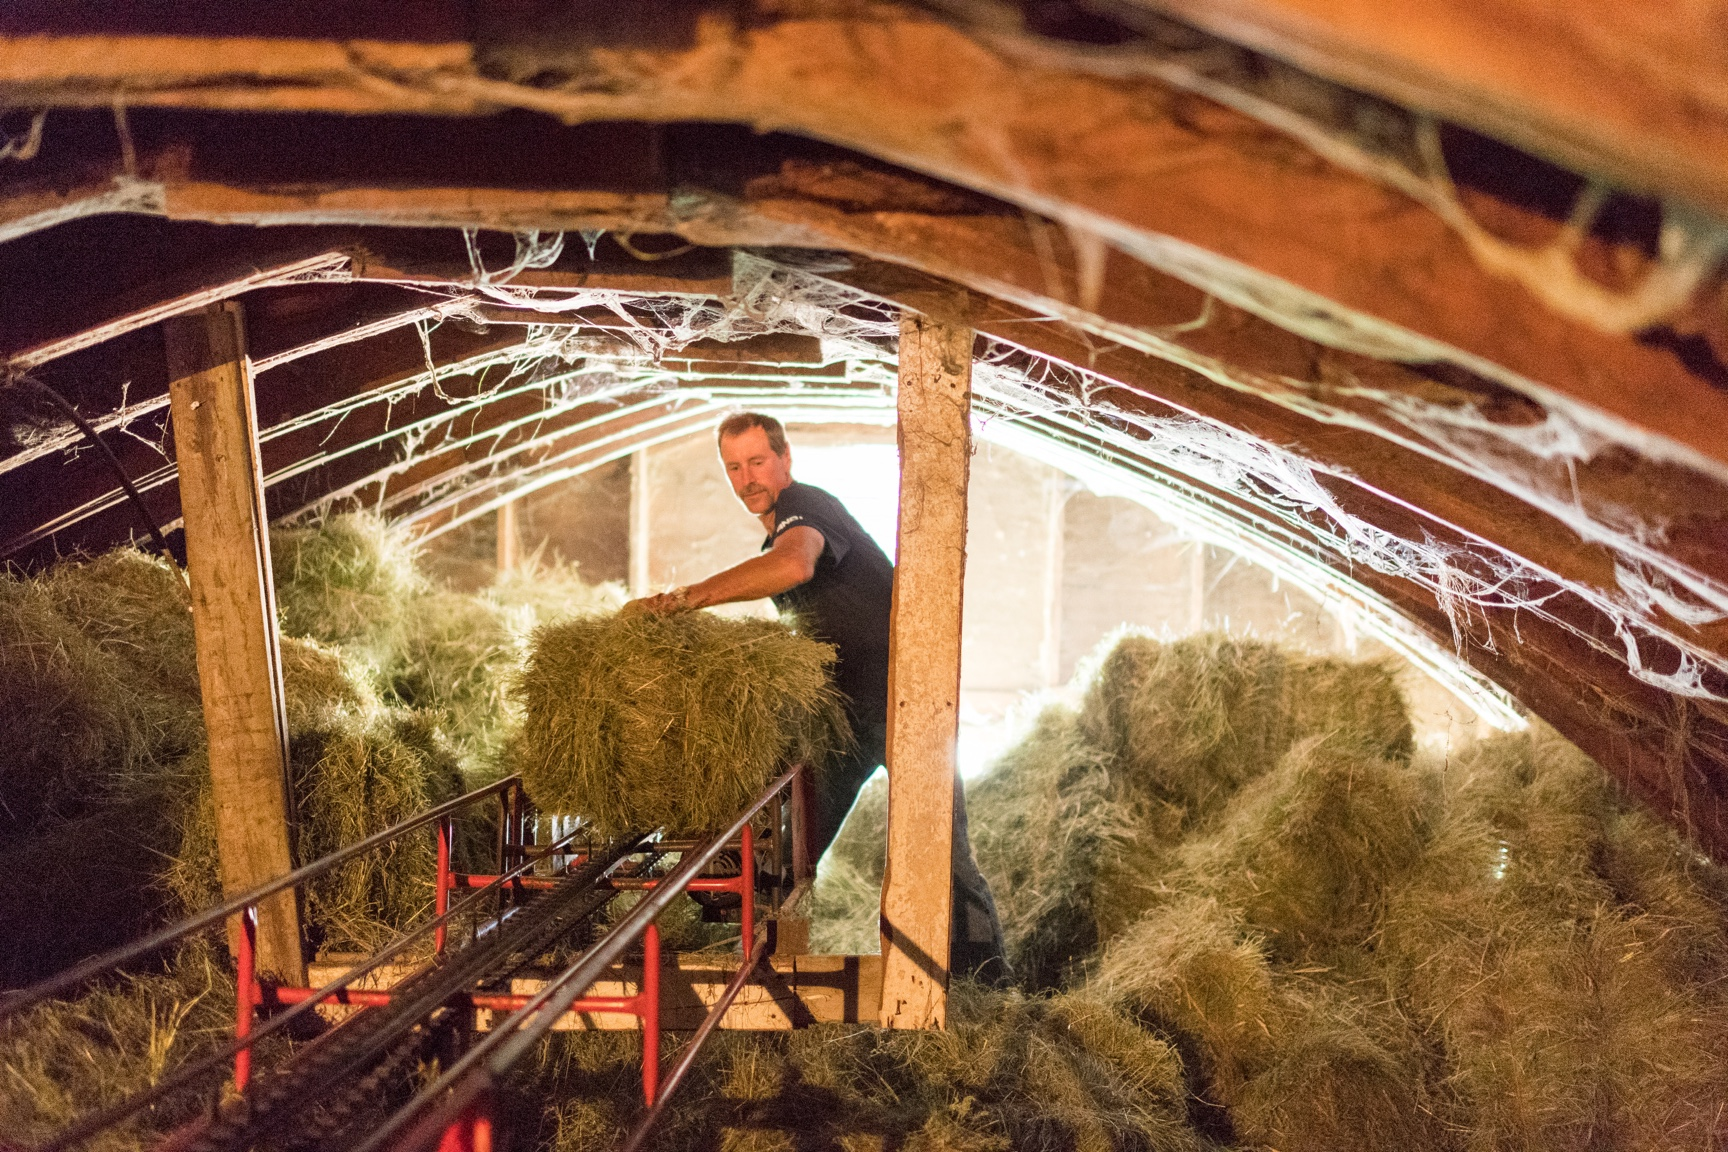 Neal Klaphake stacks hay in a cramped hayloft of the organic family farm barn.